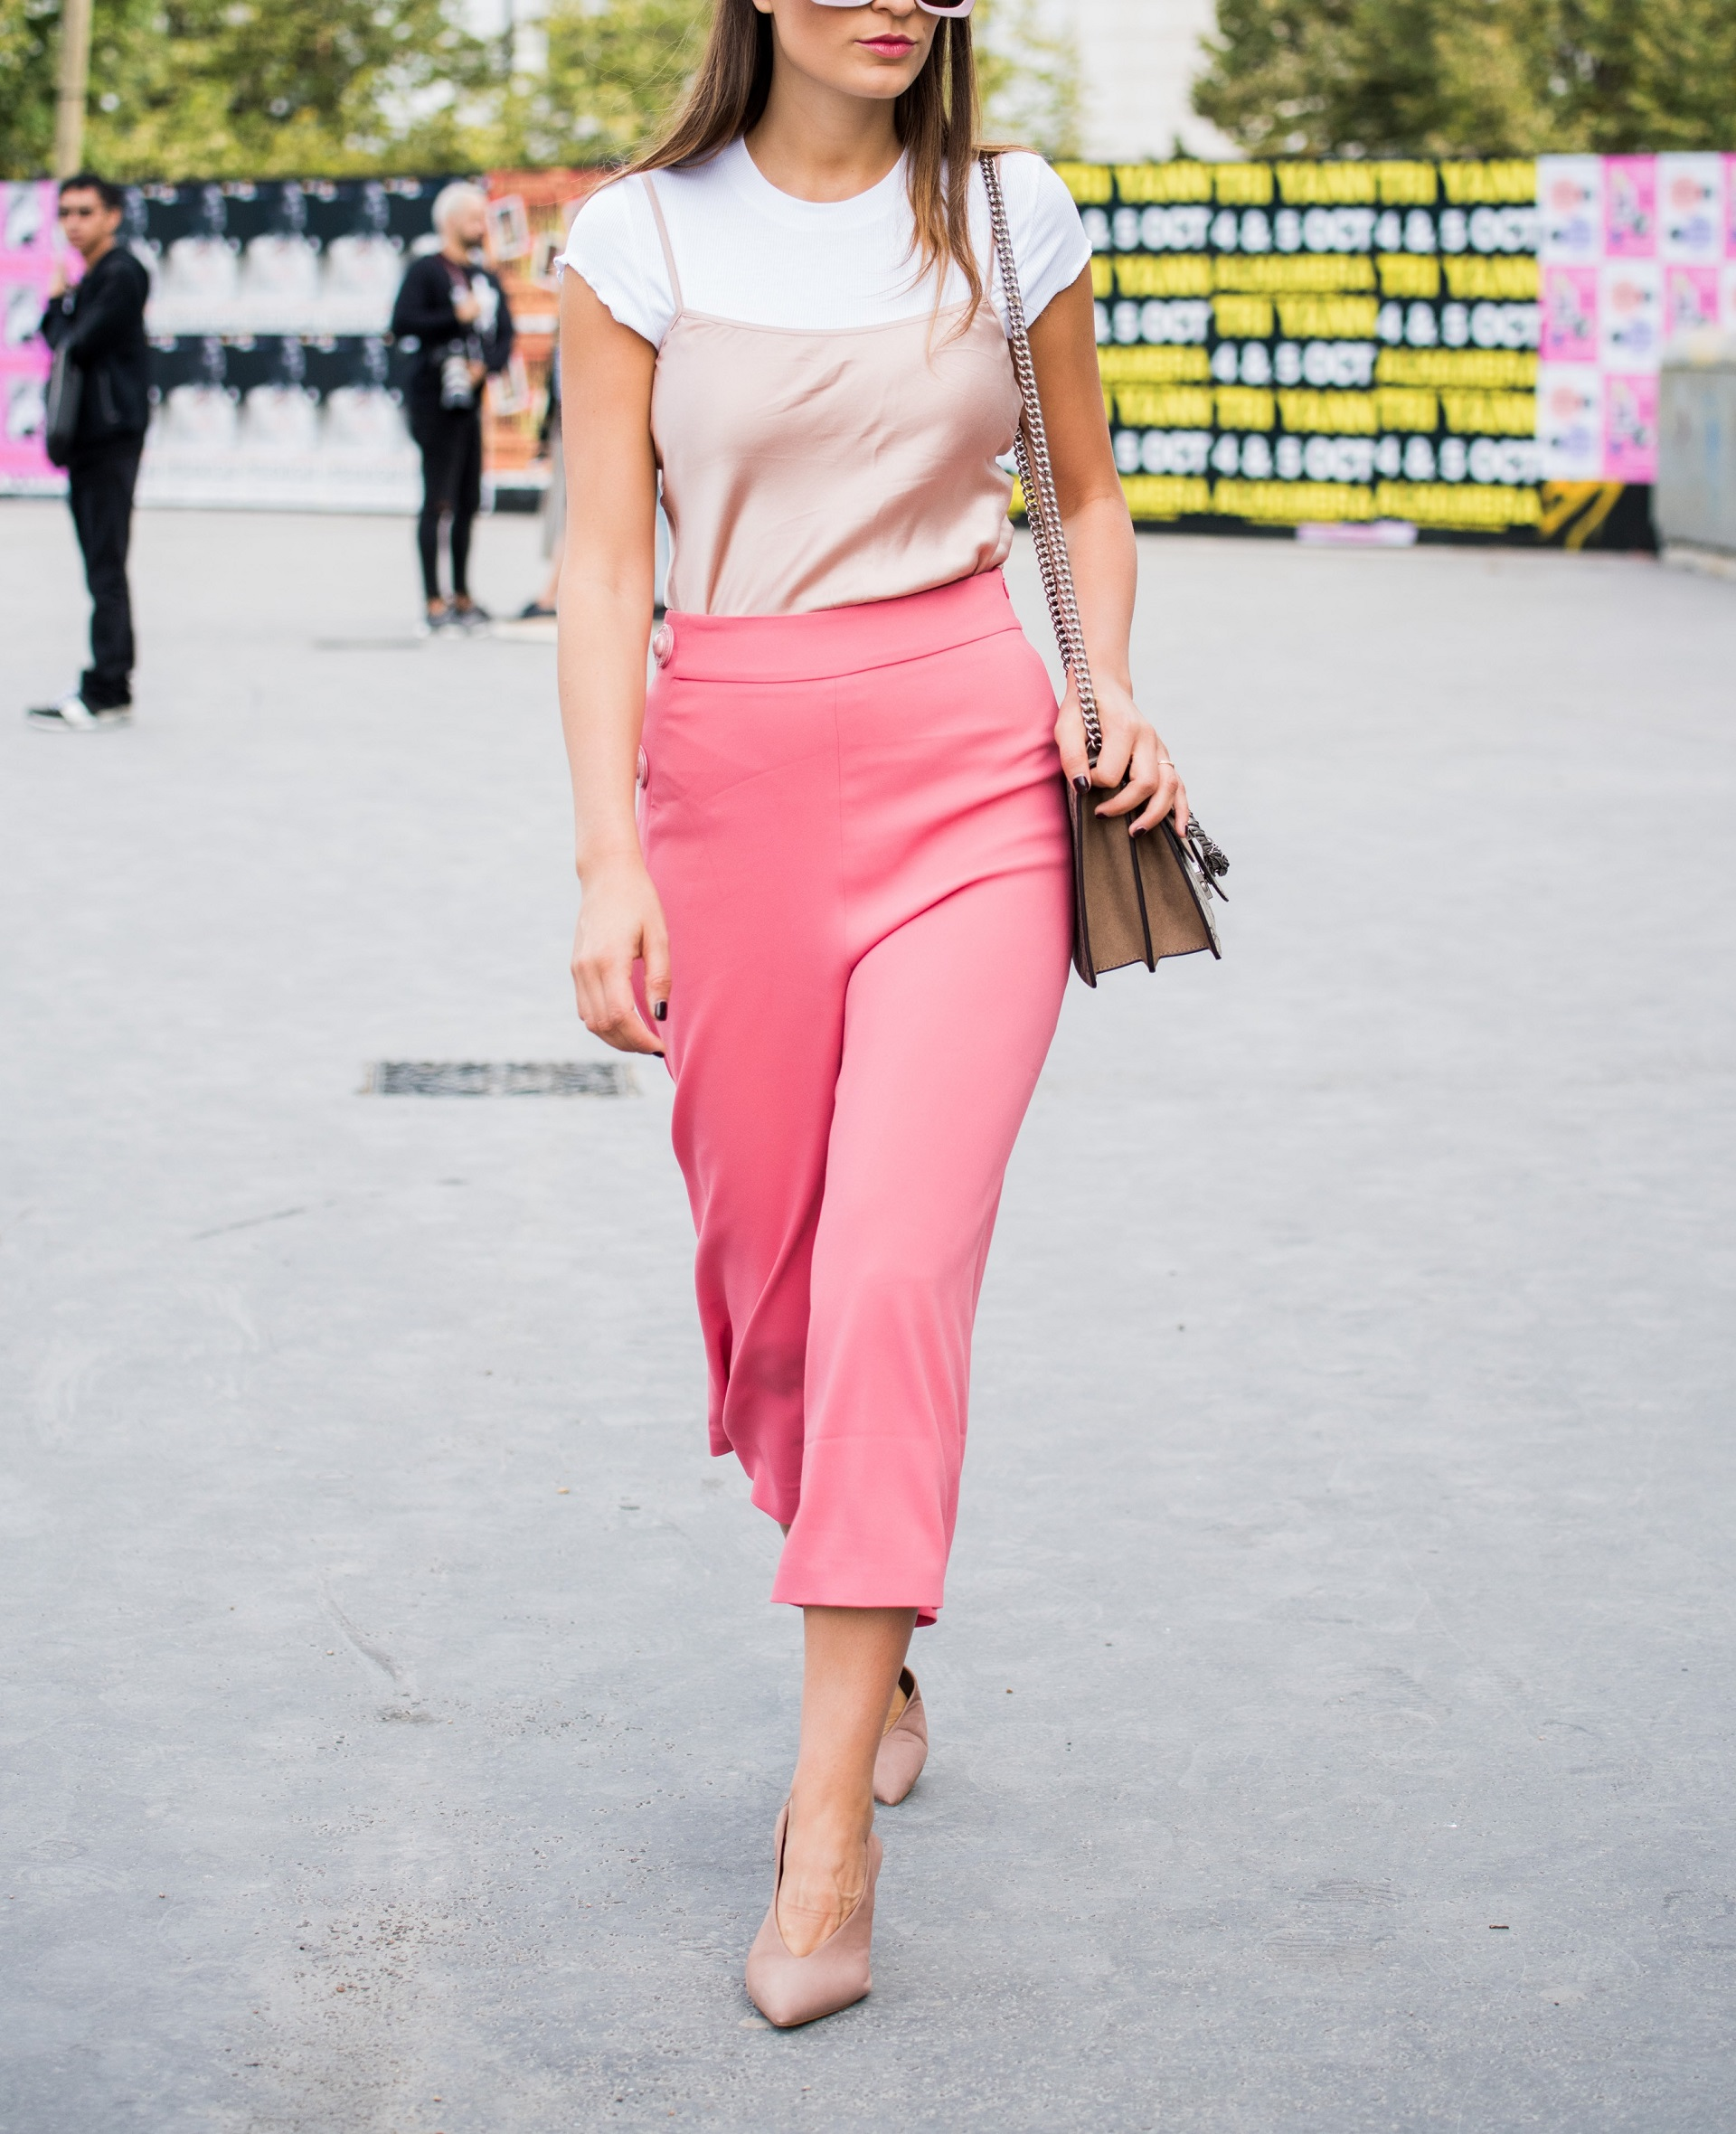 Girl wearing pink culottes.